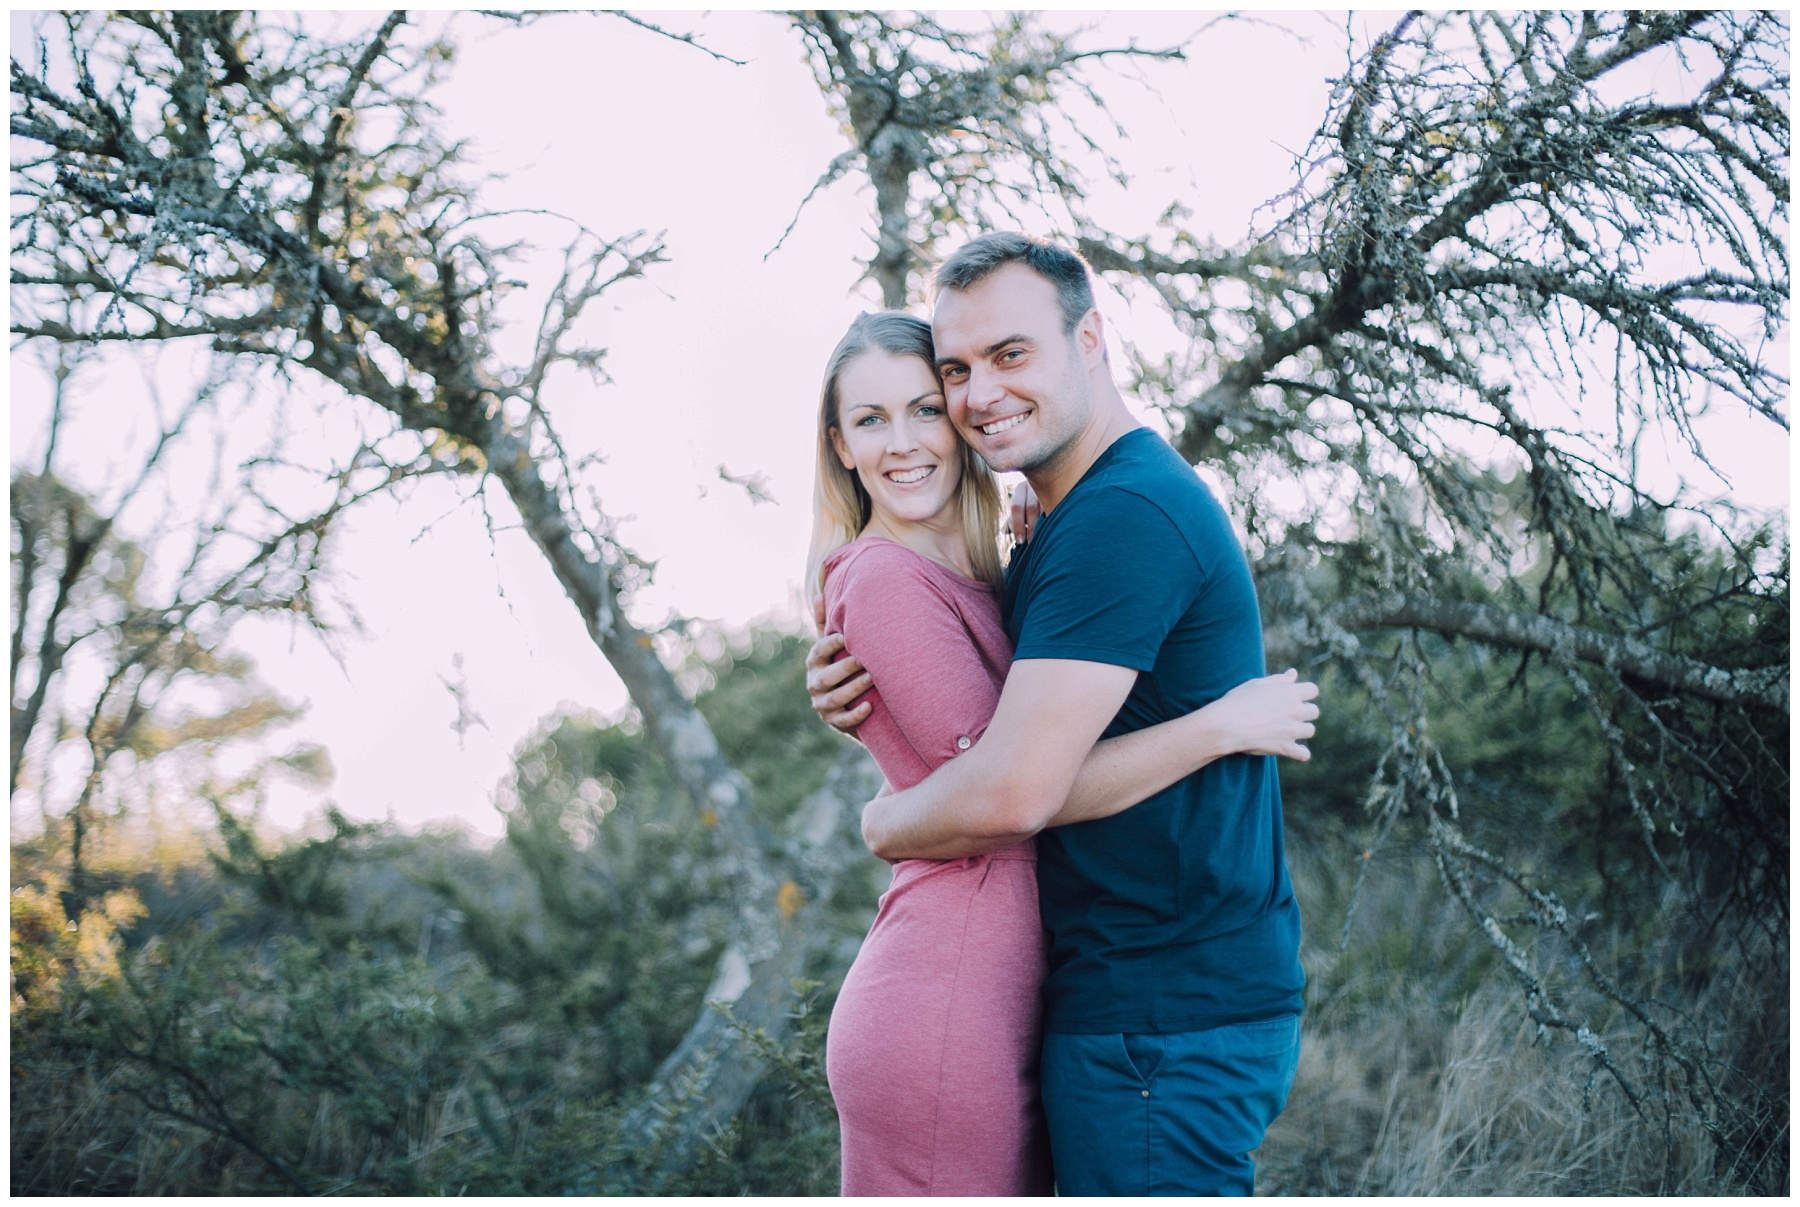 Ronel Kruger Cape Town Wedding and Lifestyle Photographer_2106.jpg